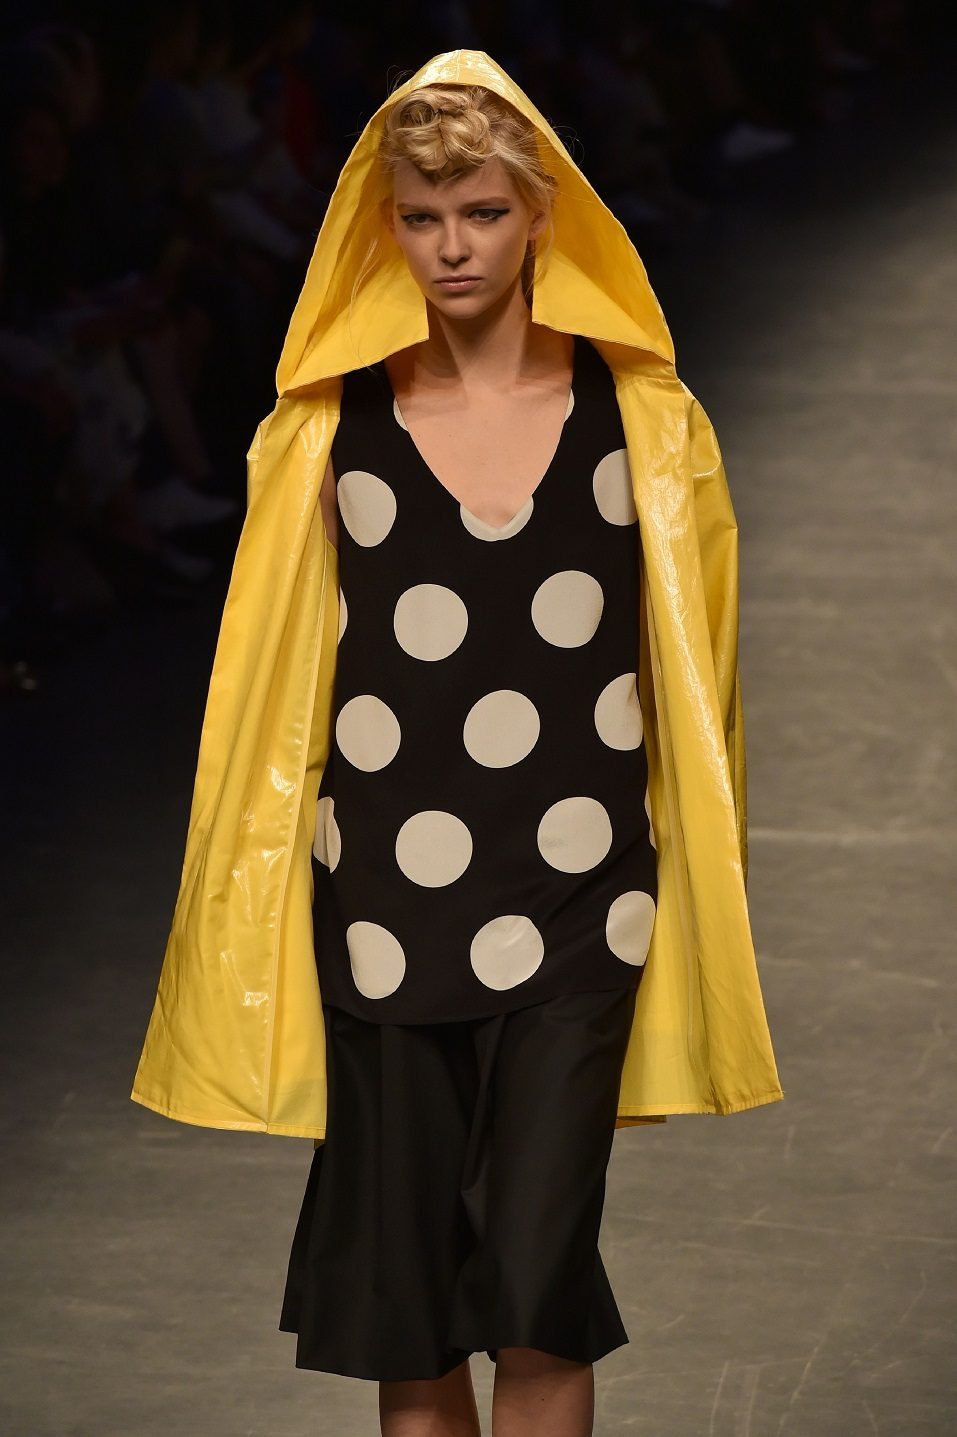 A model presents a creation for fashion house Anteprima during the 2017 Women's Spring